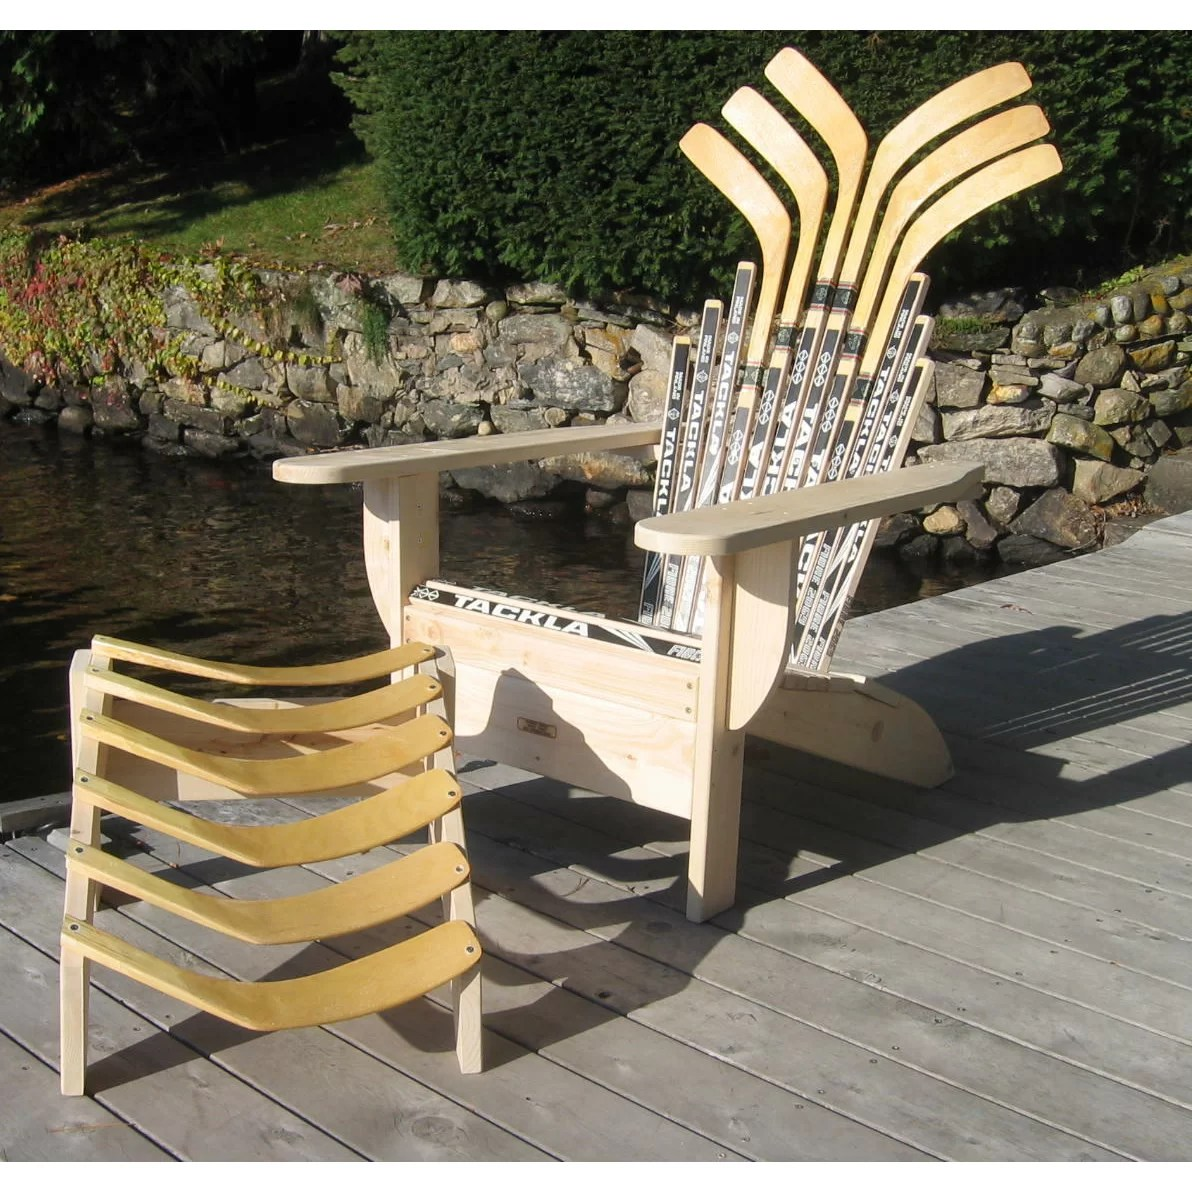 wayfair adirondack chairs linen chair covers dining room asian food near me image result for ski